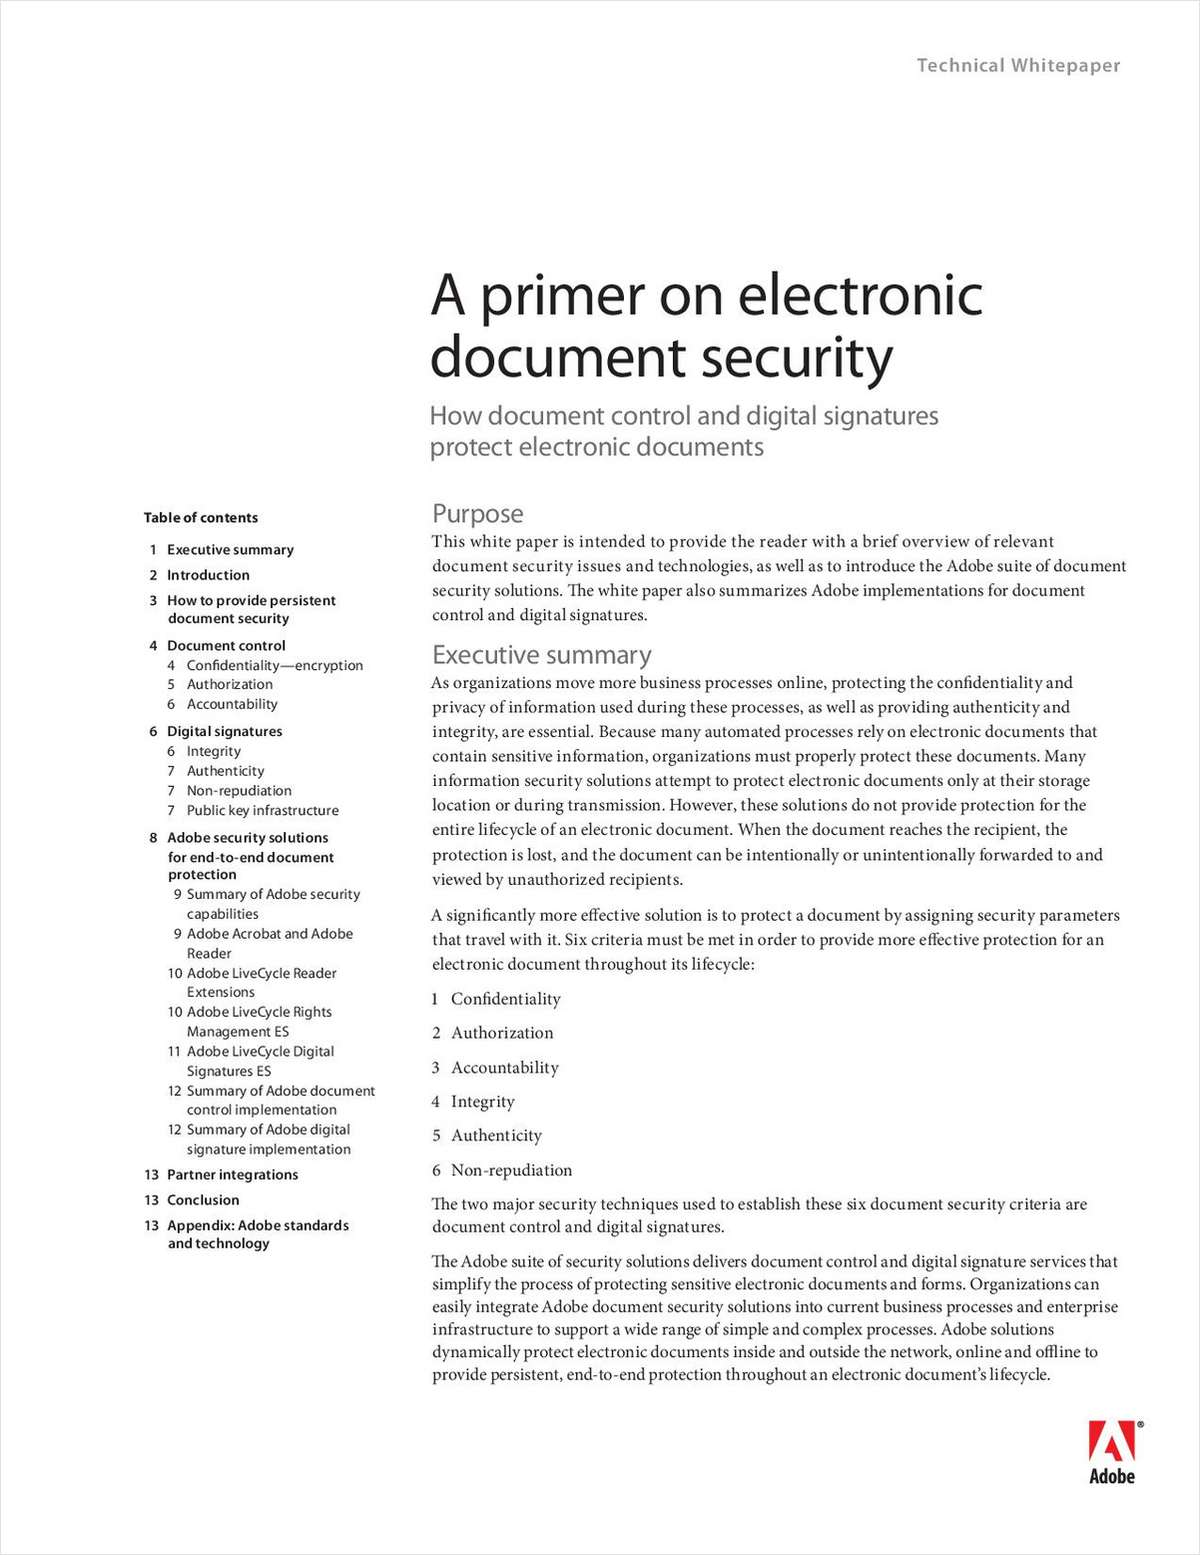 A Primer On Electronic Document Security